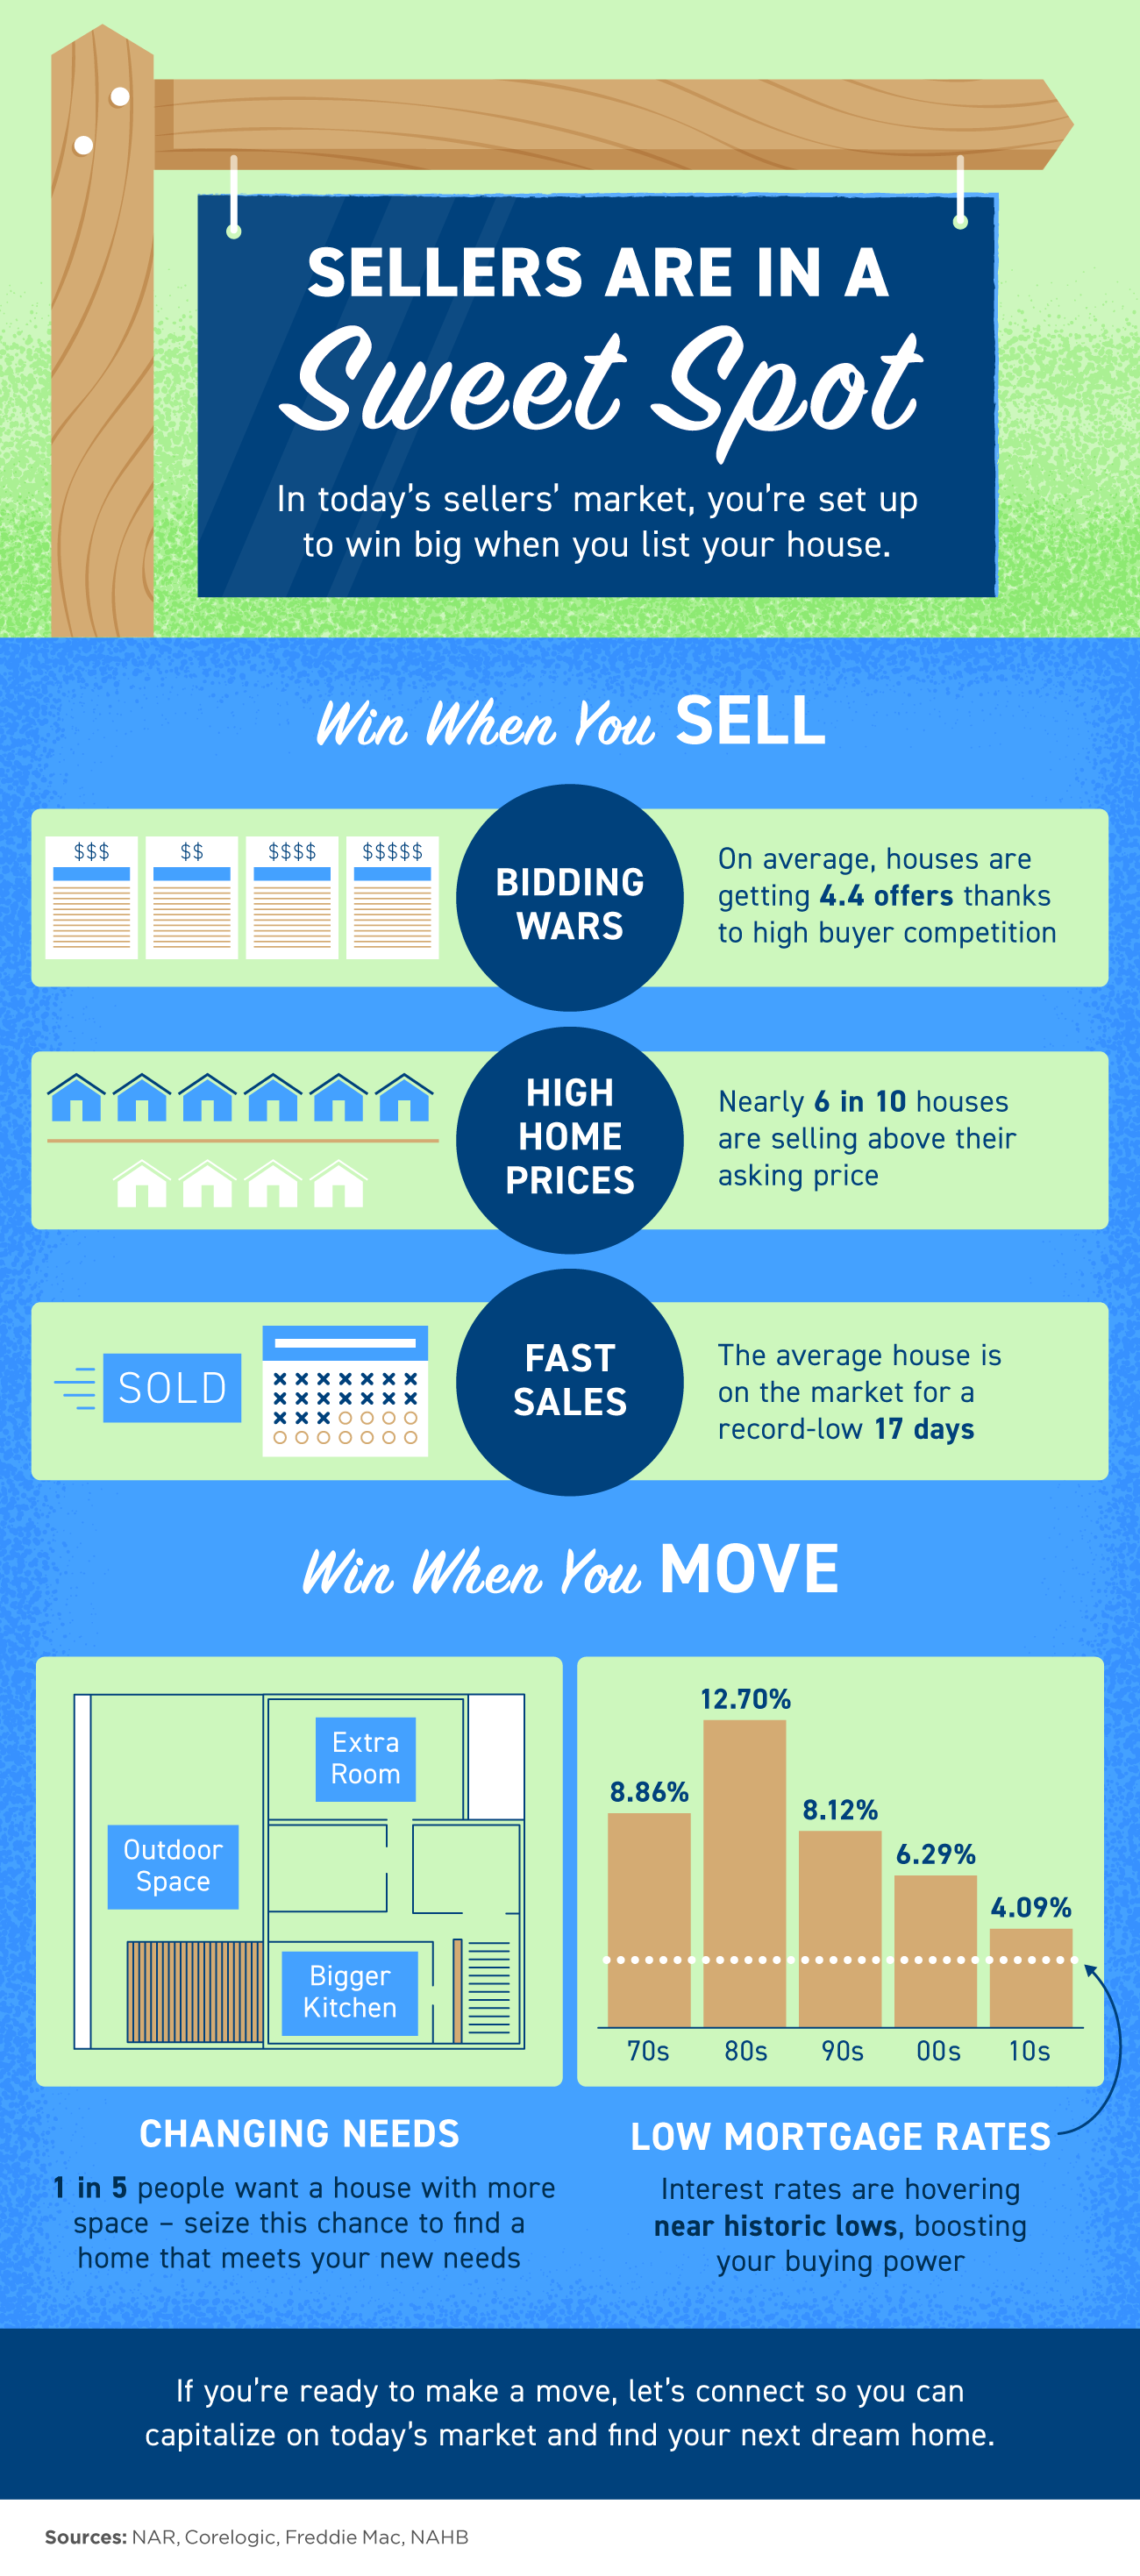 Roseville Area Home Sellers Are in a Sweet Spot [INFOGRAPHIC] | Kaye Swain Roseville REALTOR